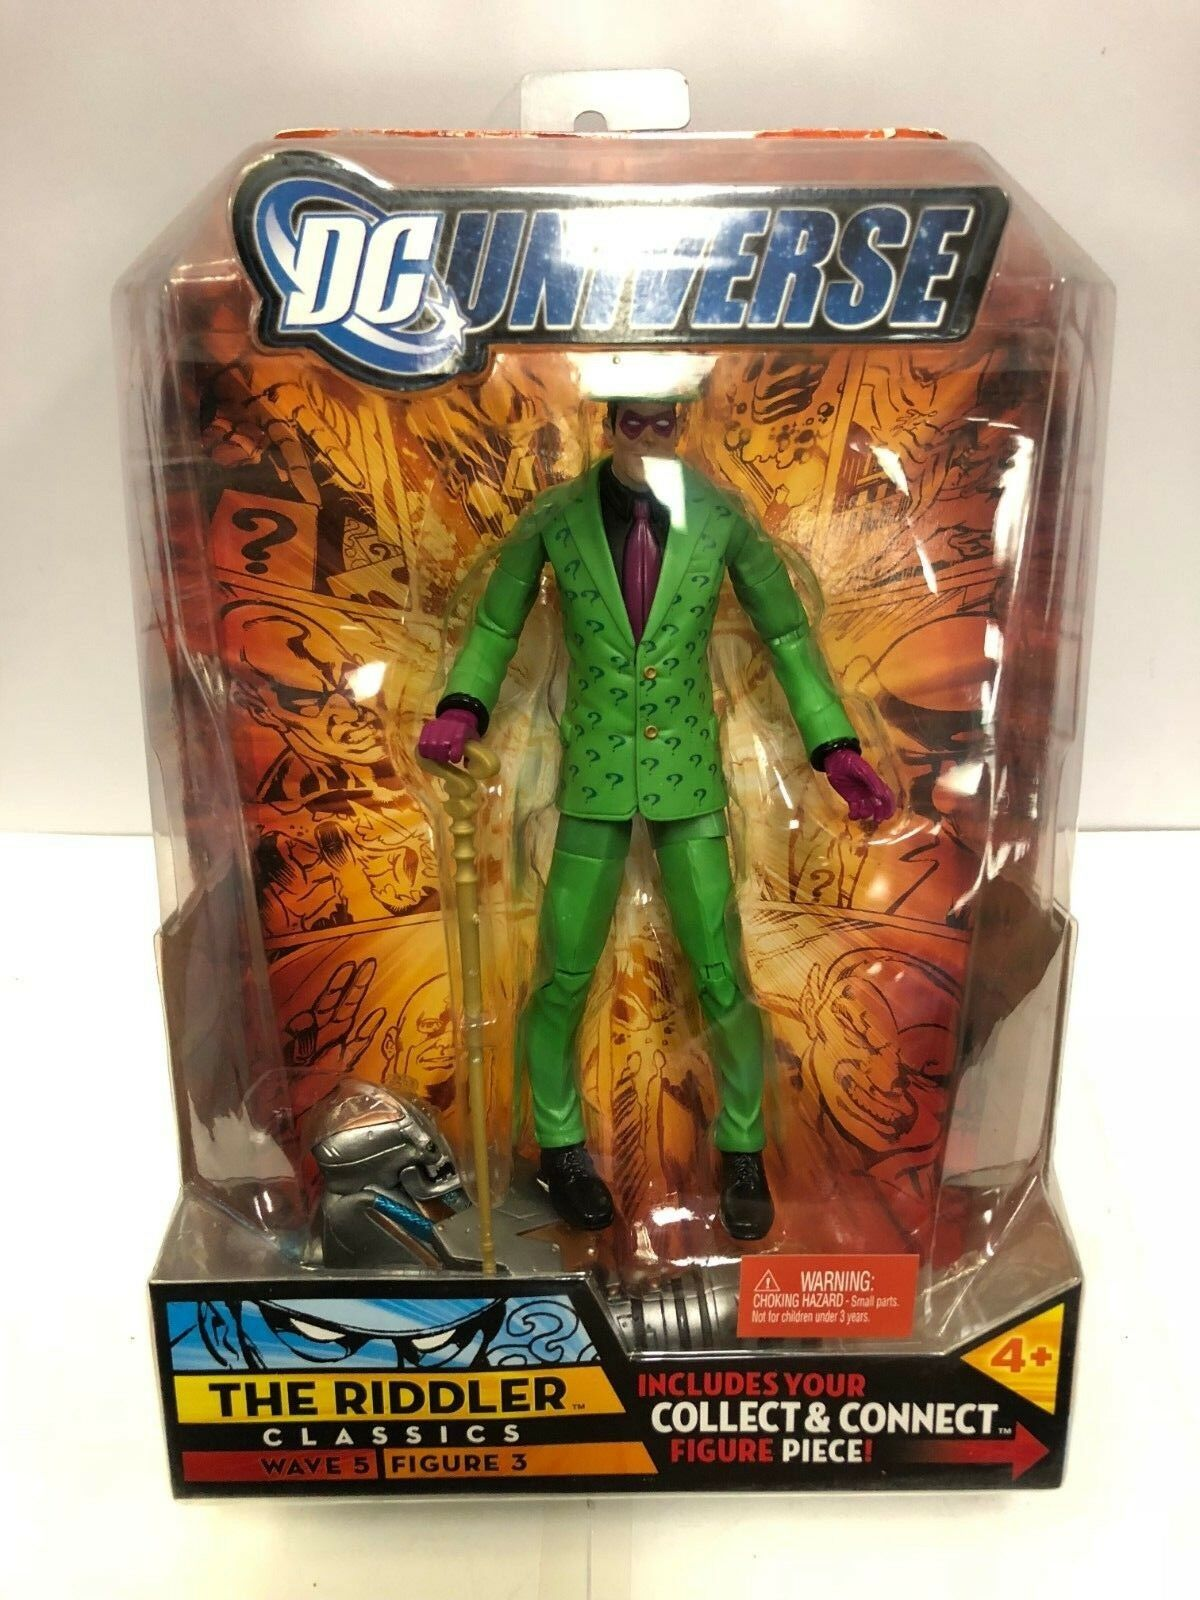 DC Universe Riddler Classics Wave 5 The Riddler Universe Figure Mattel 2008 32c8e7